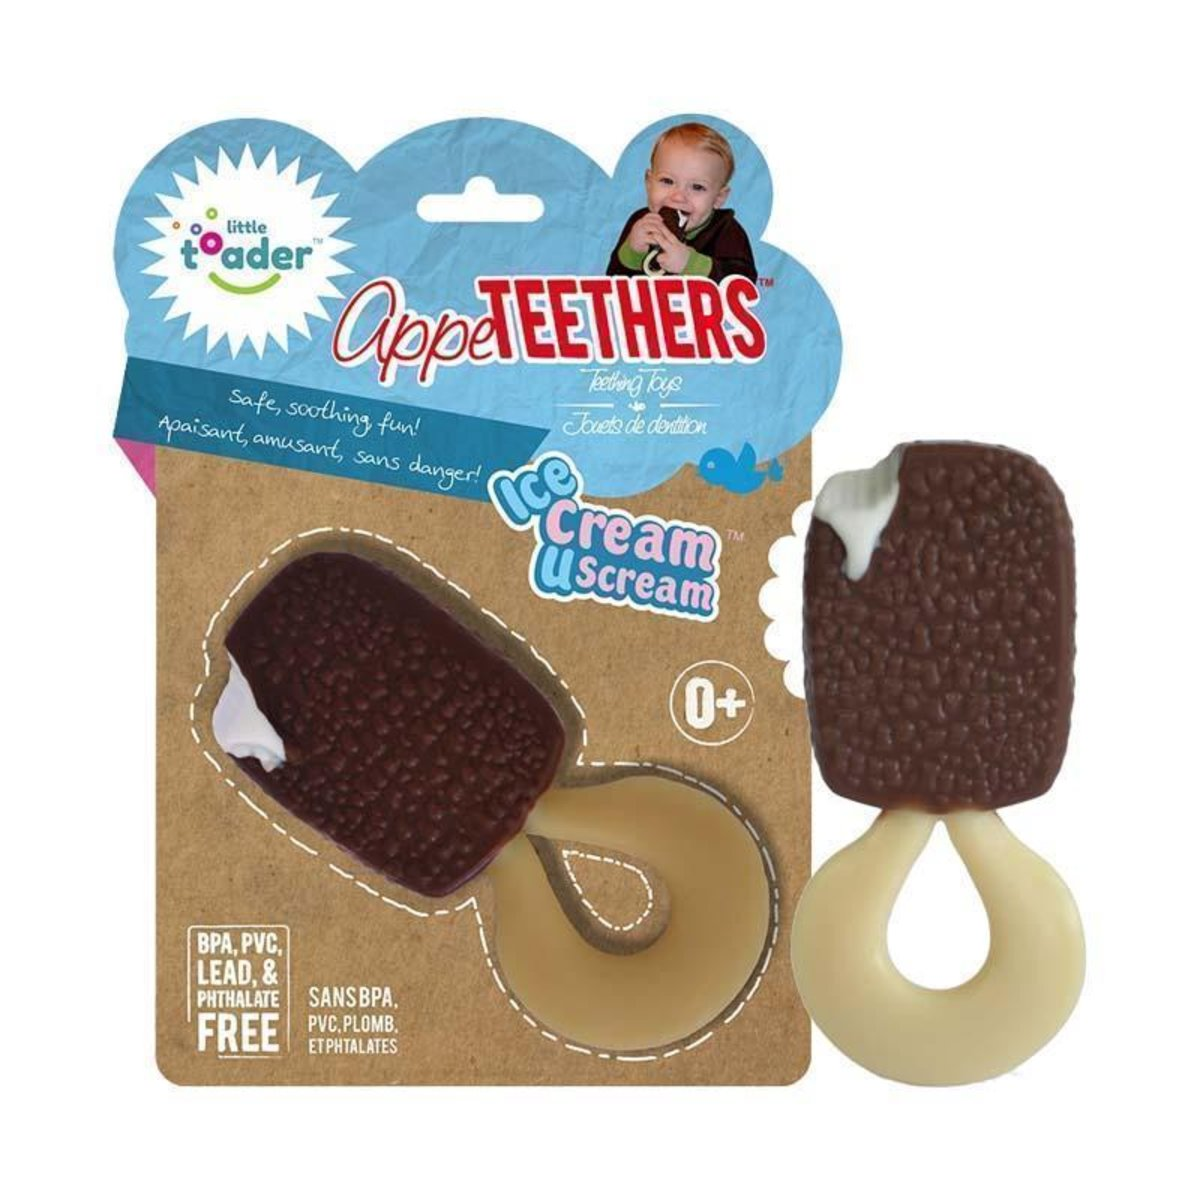 Little toader 3D appeTEETHERS Teething Toys - Ice Cream U Scream